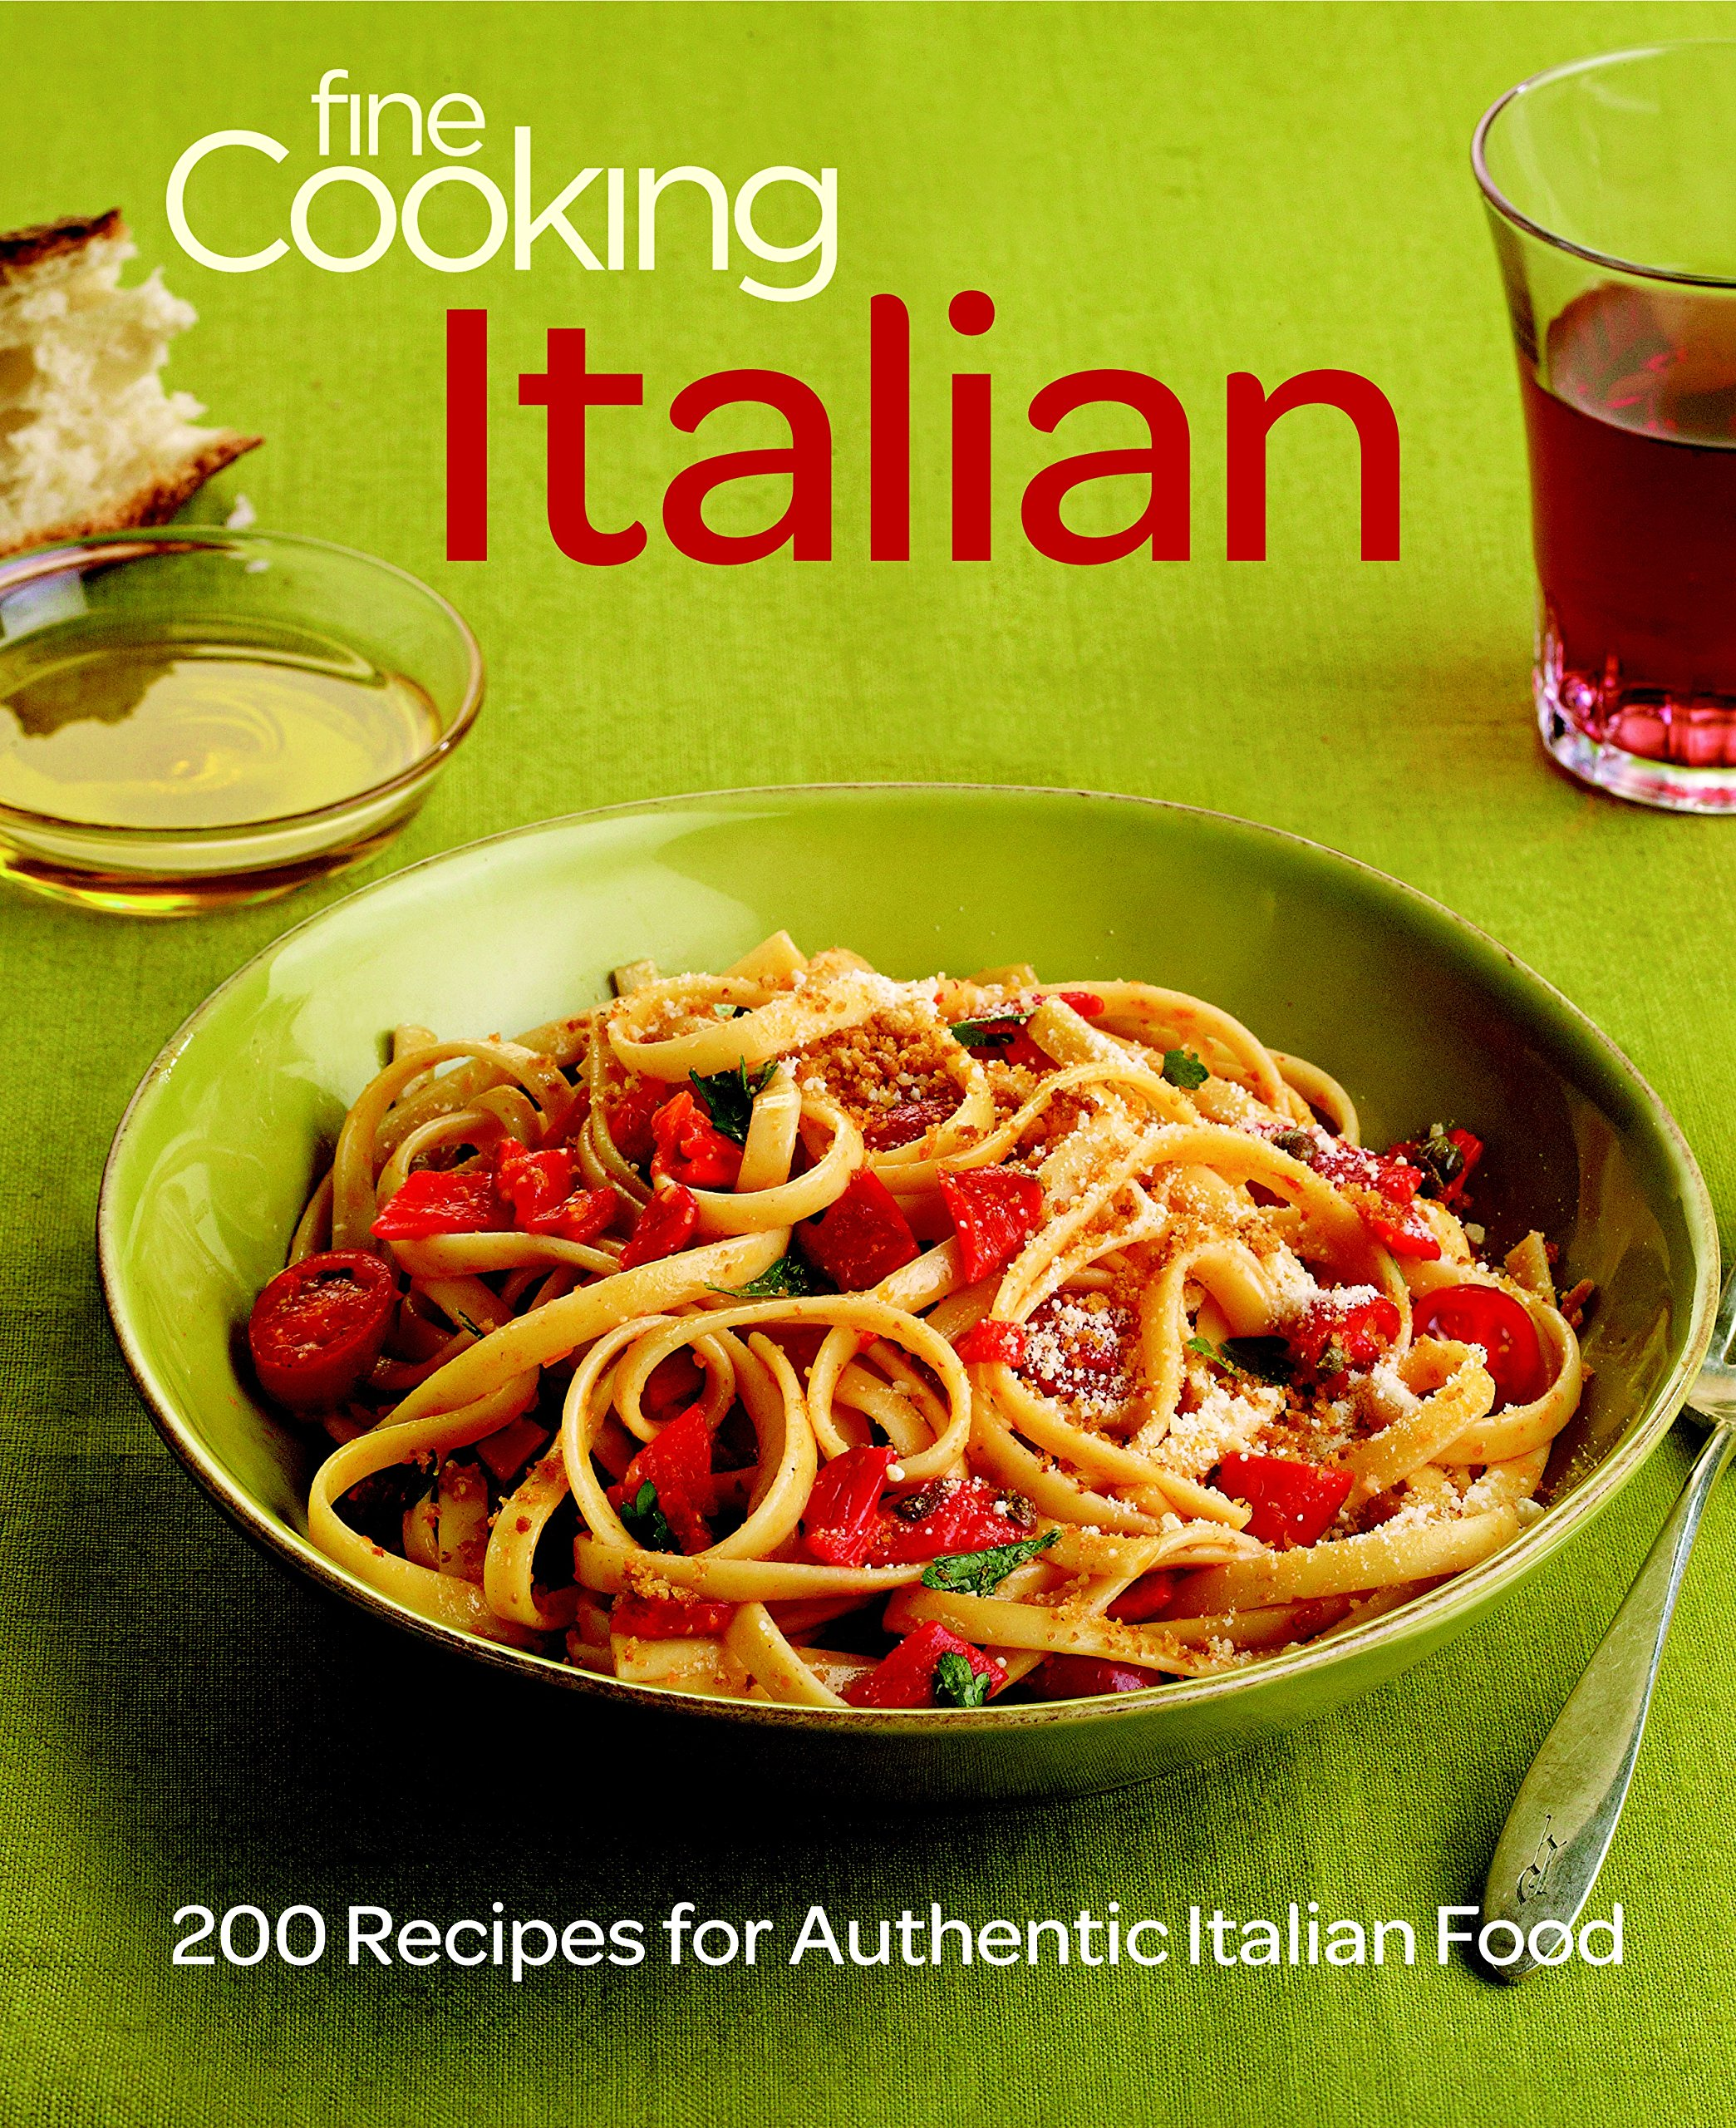 Fine cooking italian 200 recipes for authentic italian food fine cooking italian 200 recipes for authentic italian food editors of fine cooking 9781600854309 amazon books forumfinder Images